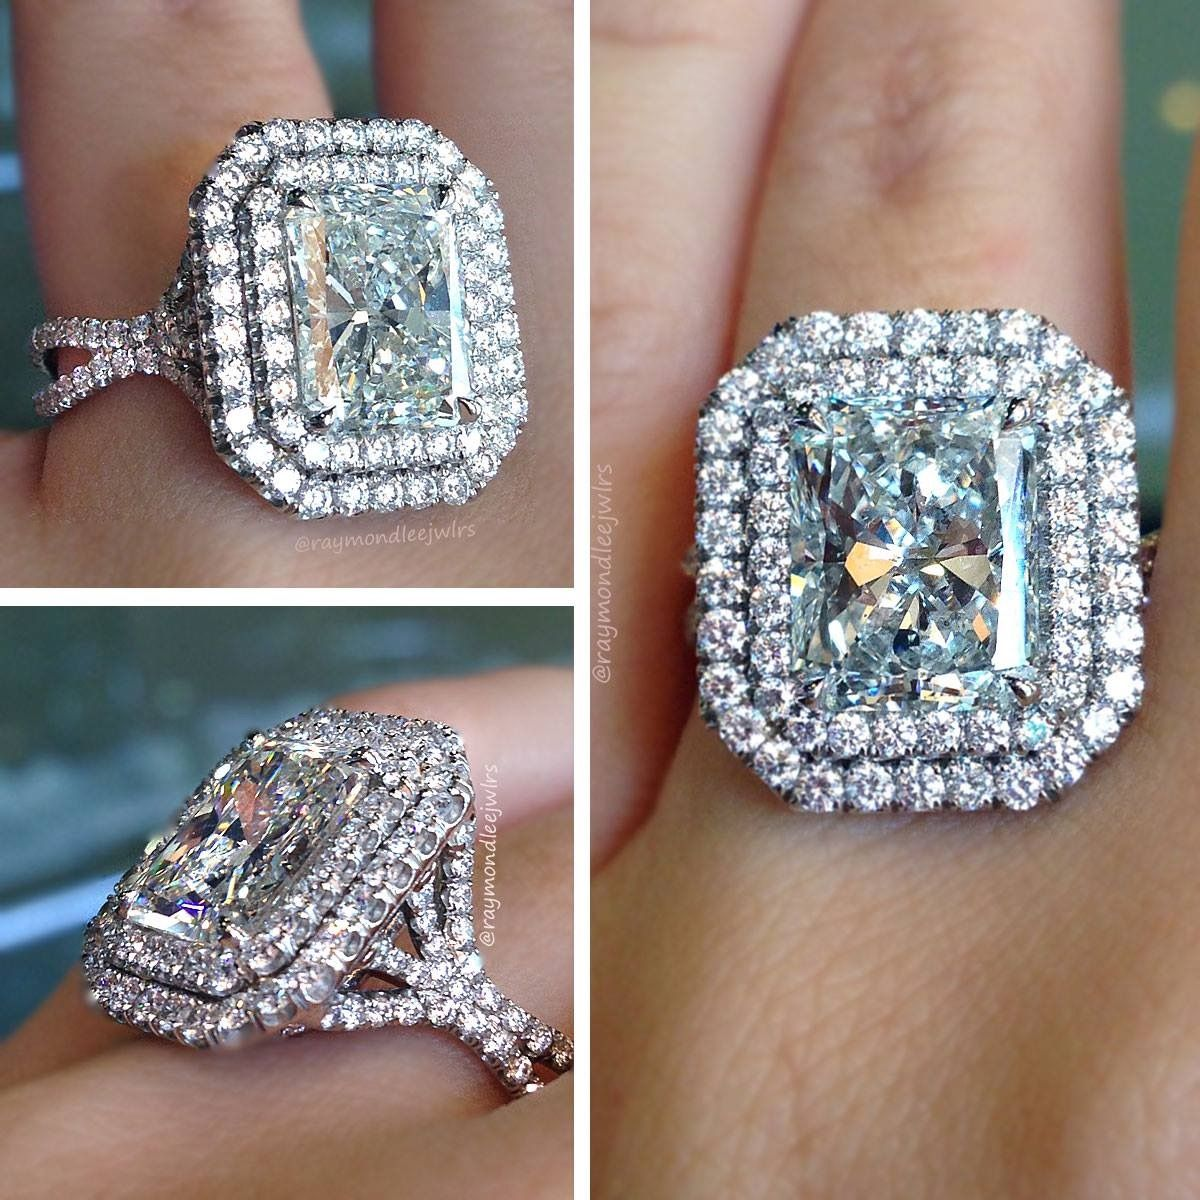 Pin by Teaona Hunt on Wedding ideas Pinterest Ring Engagement